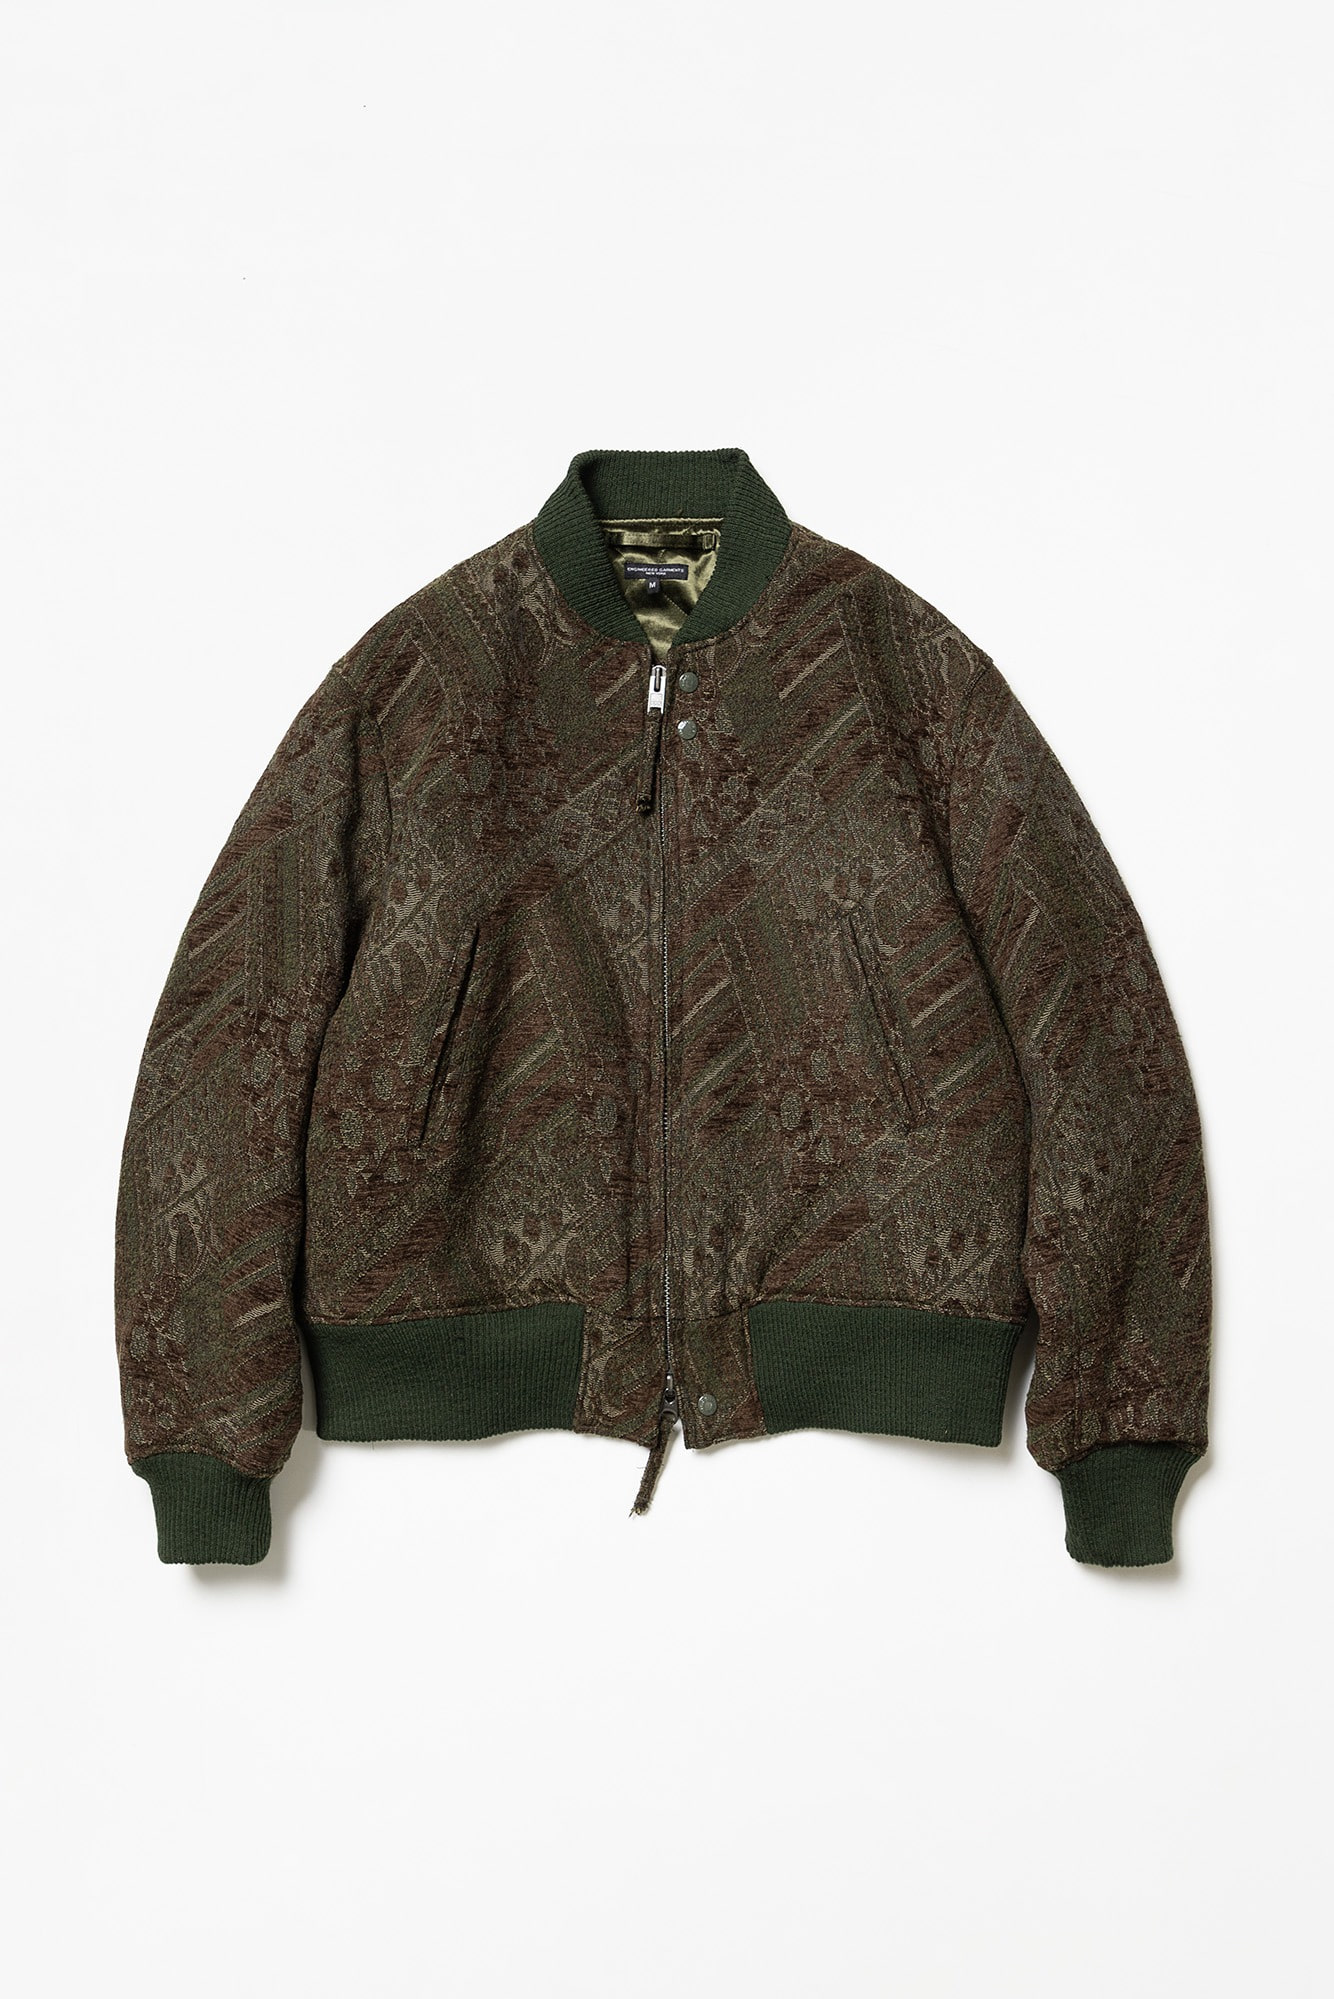 "ENGINEERED GARMENTS SVR jacket ""Olive/Brown Chenille"""